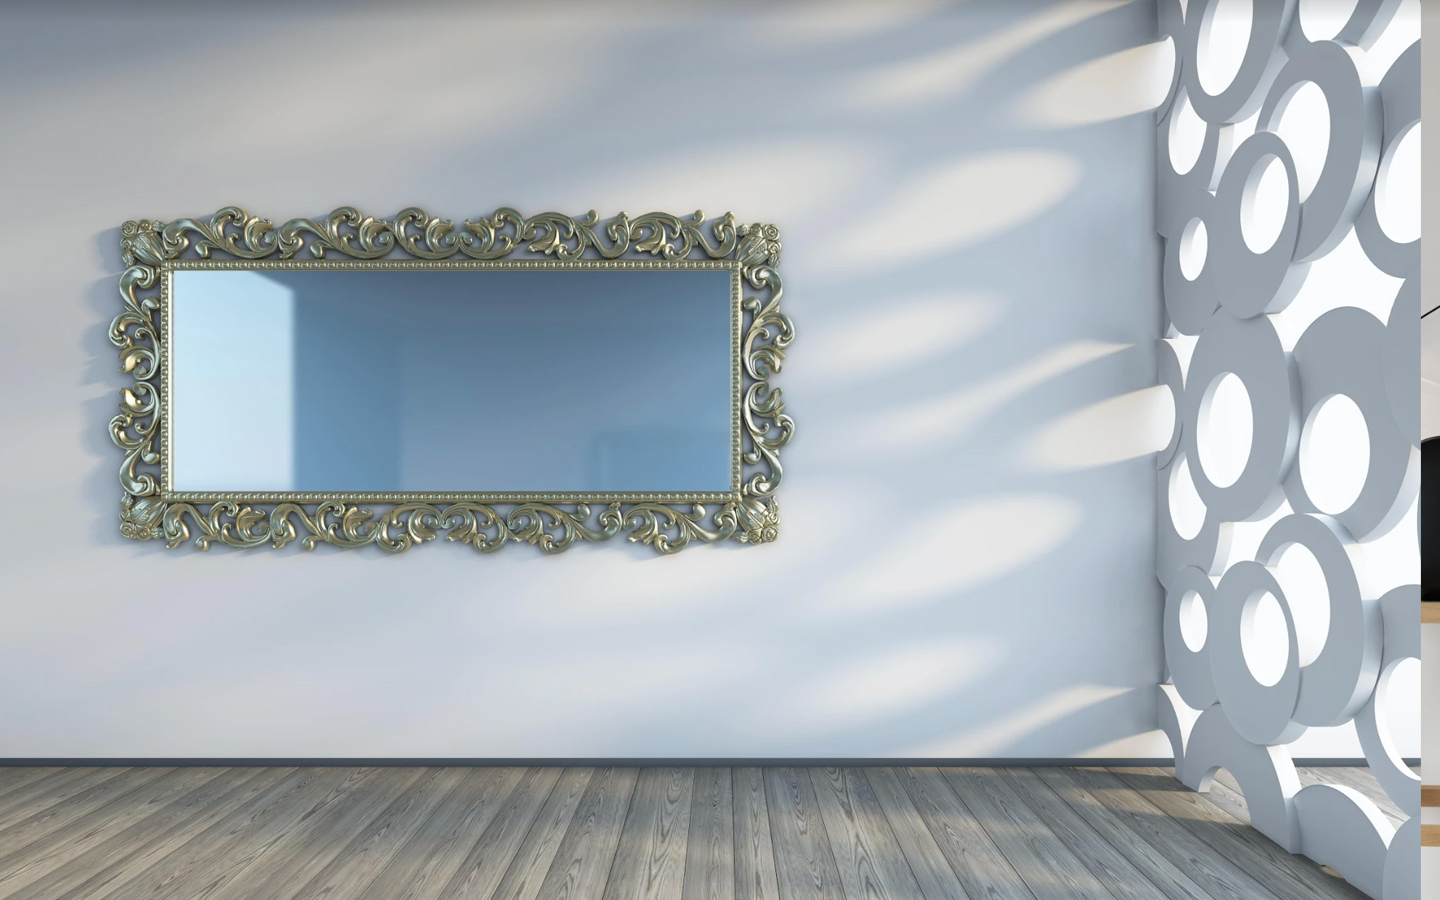 Mirrors and reflective surfaces for lighting